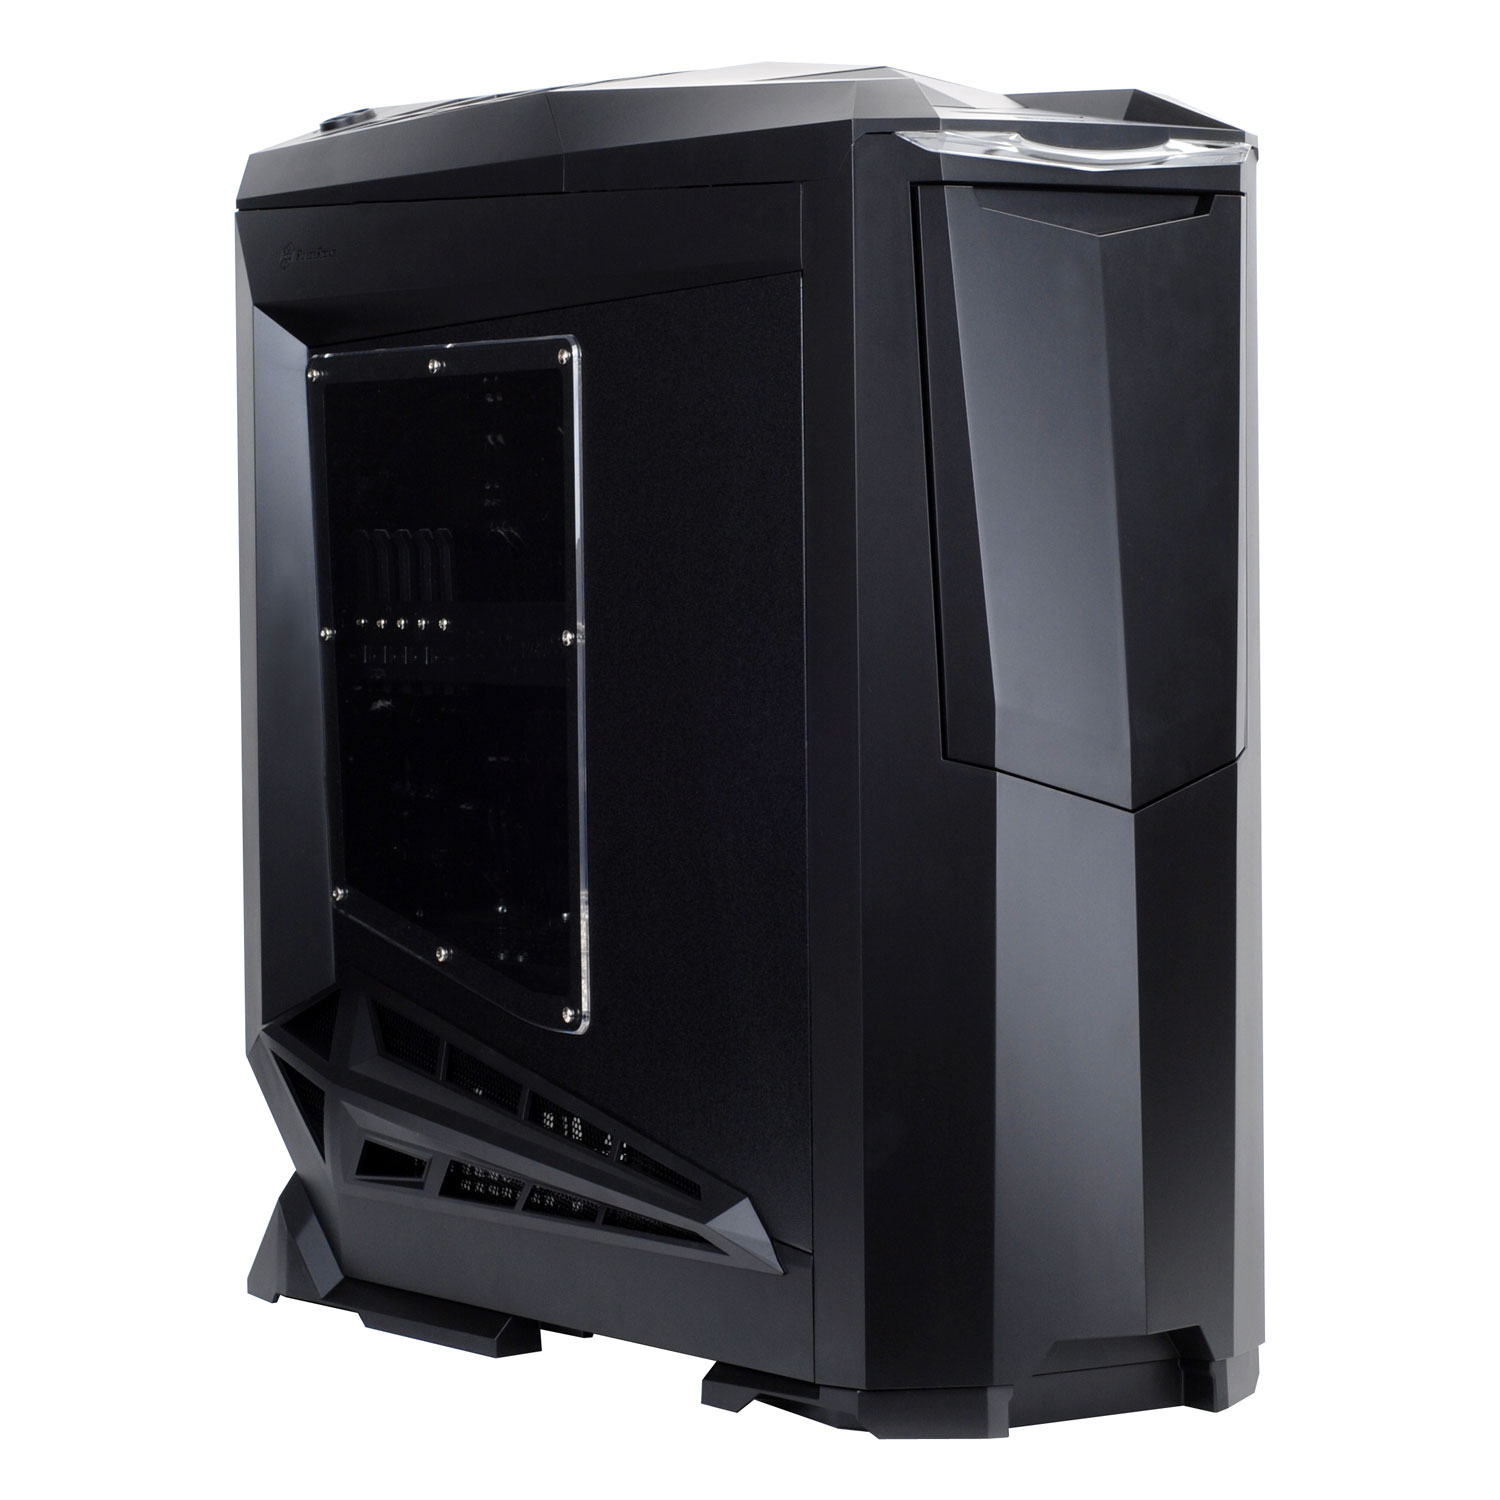 silverstone raven rv01 usb 3 0 edition noir bo tier pc silverstone sur. Black Bedroom Furniture Sets. Home Design Ideas